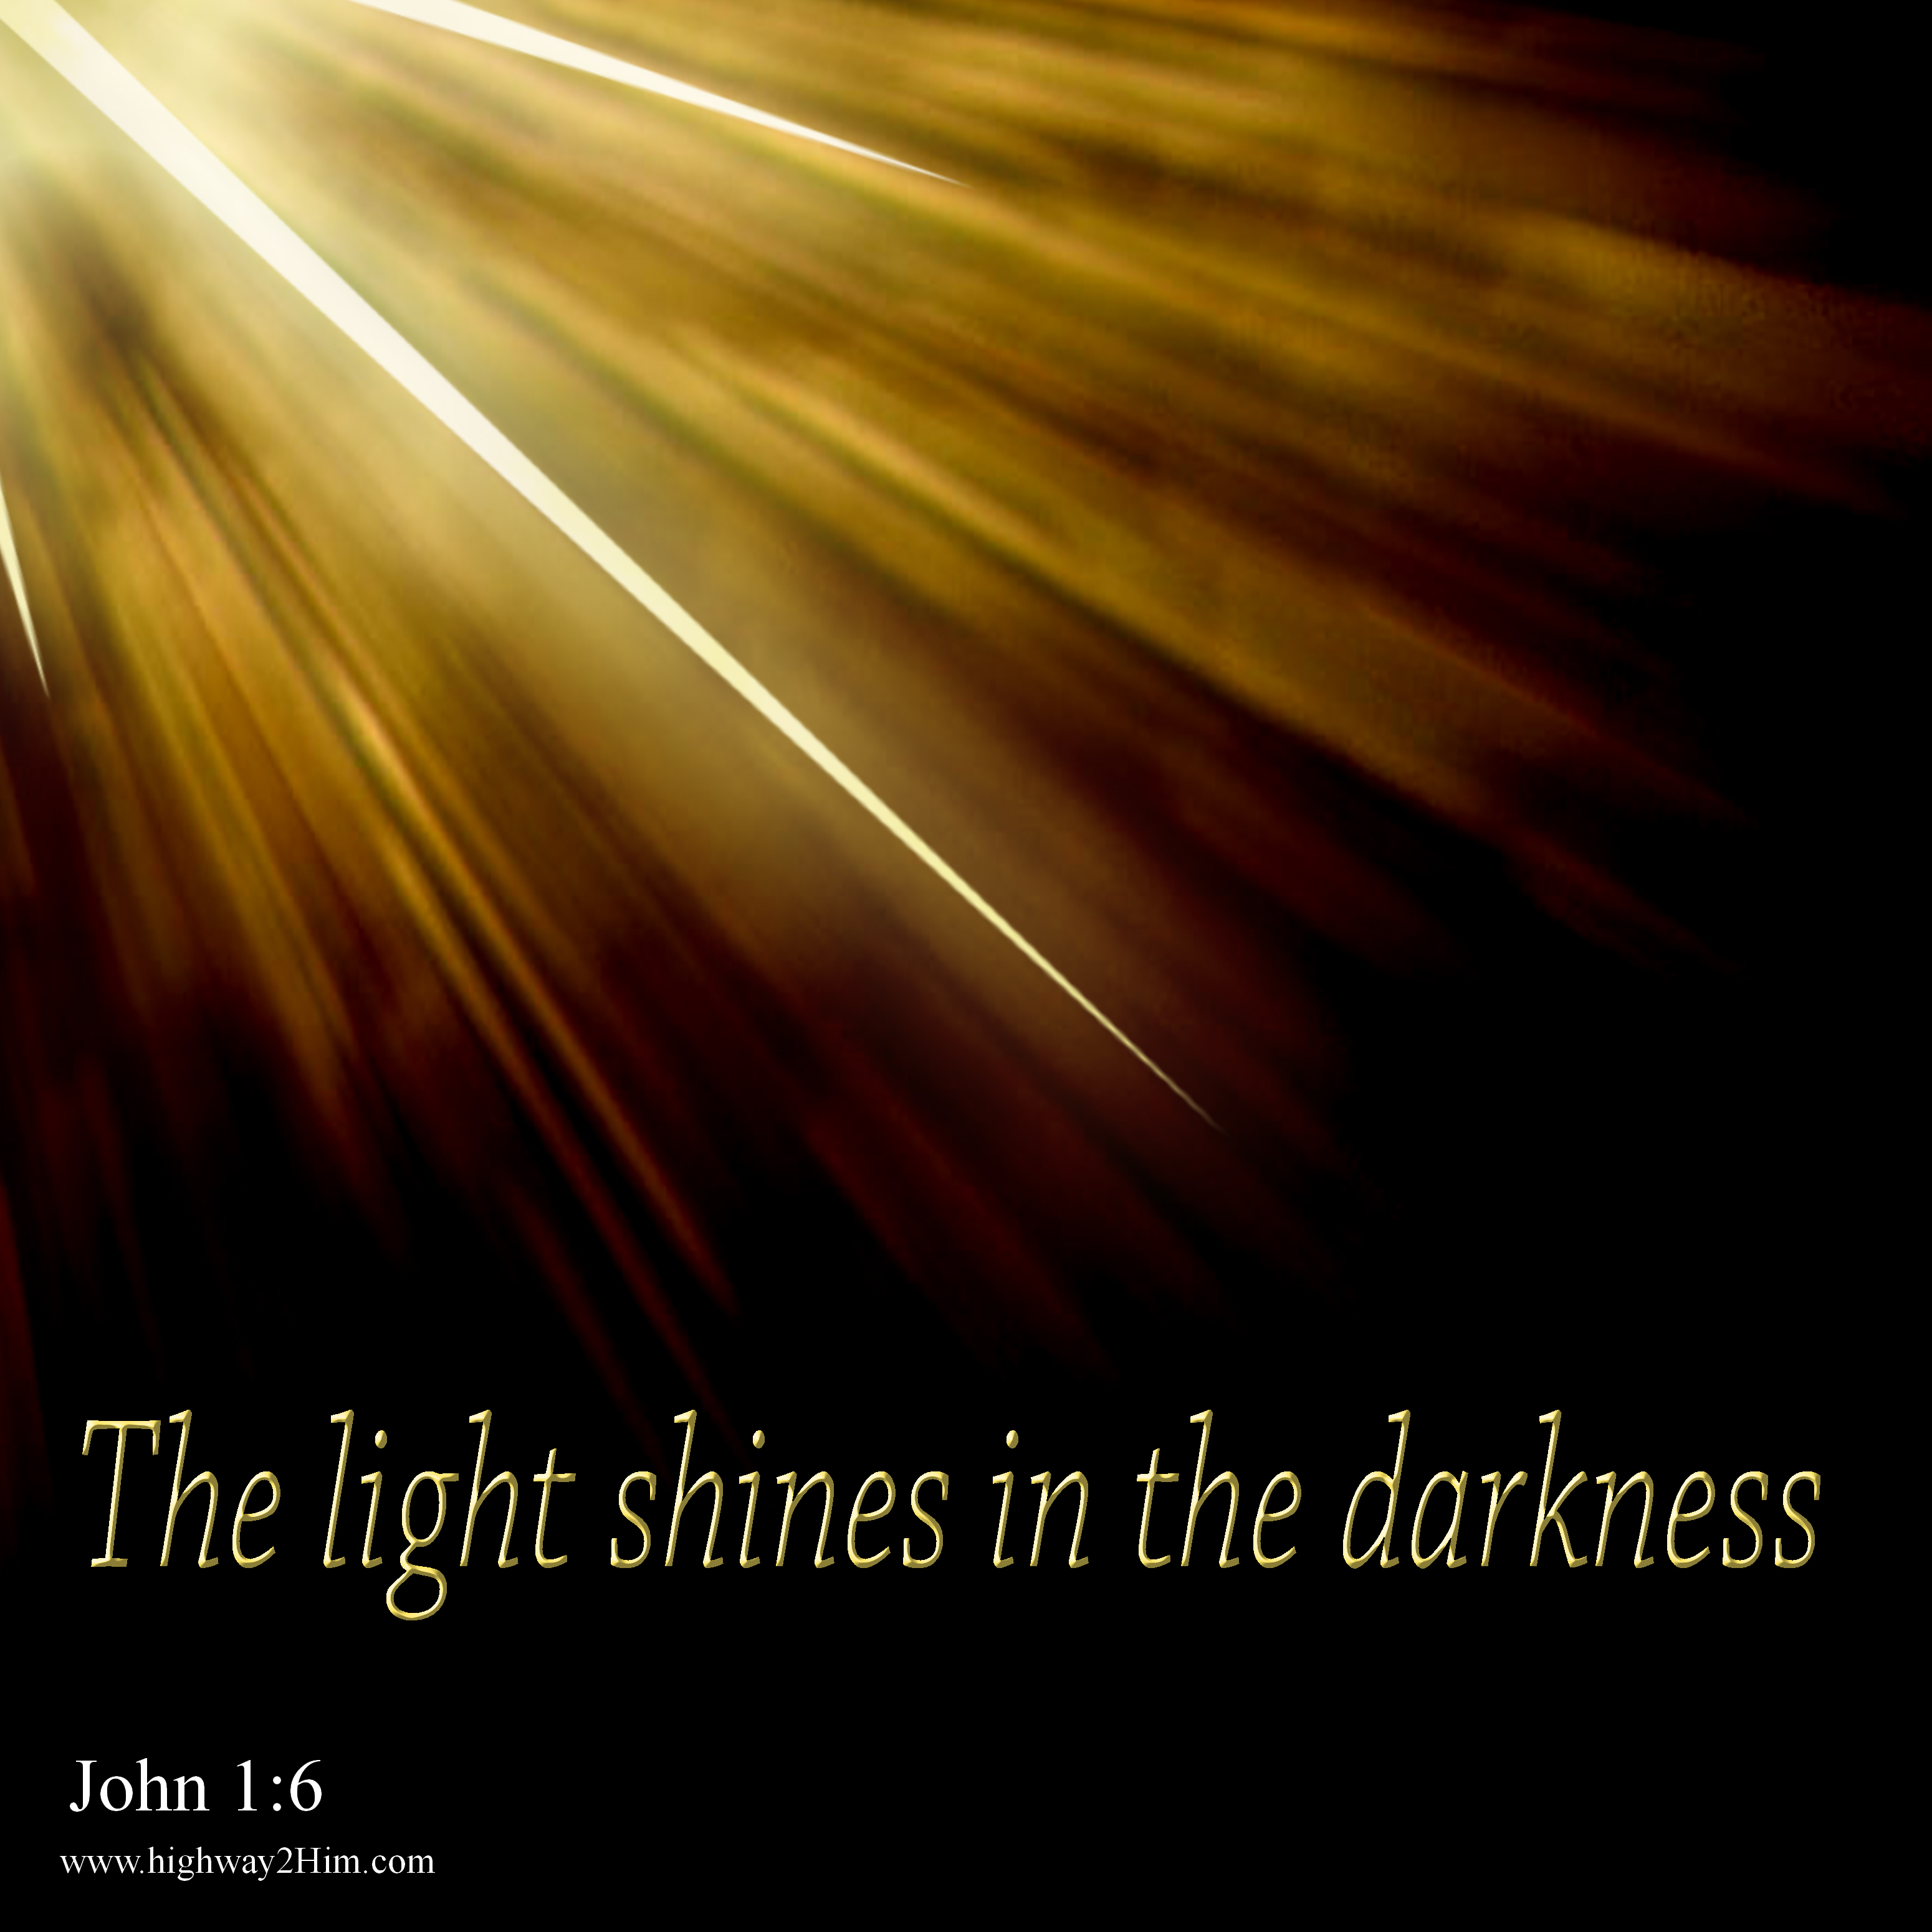 The Light Shines in Darkness